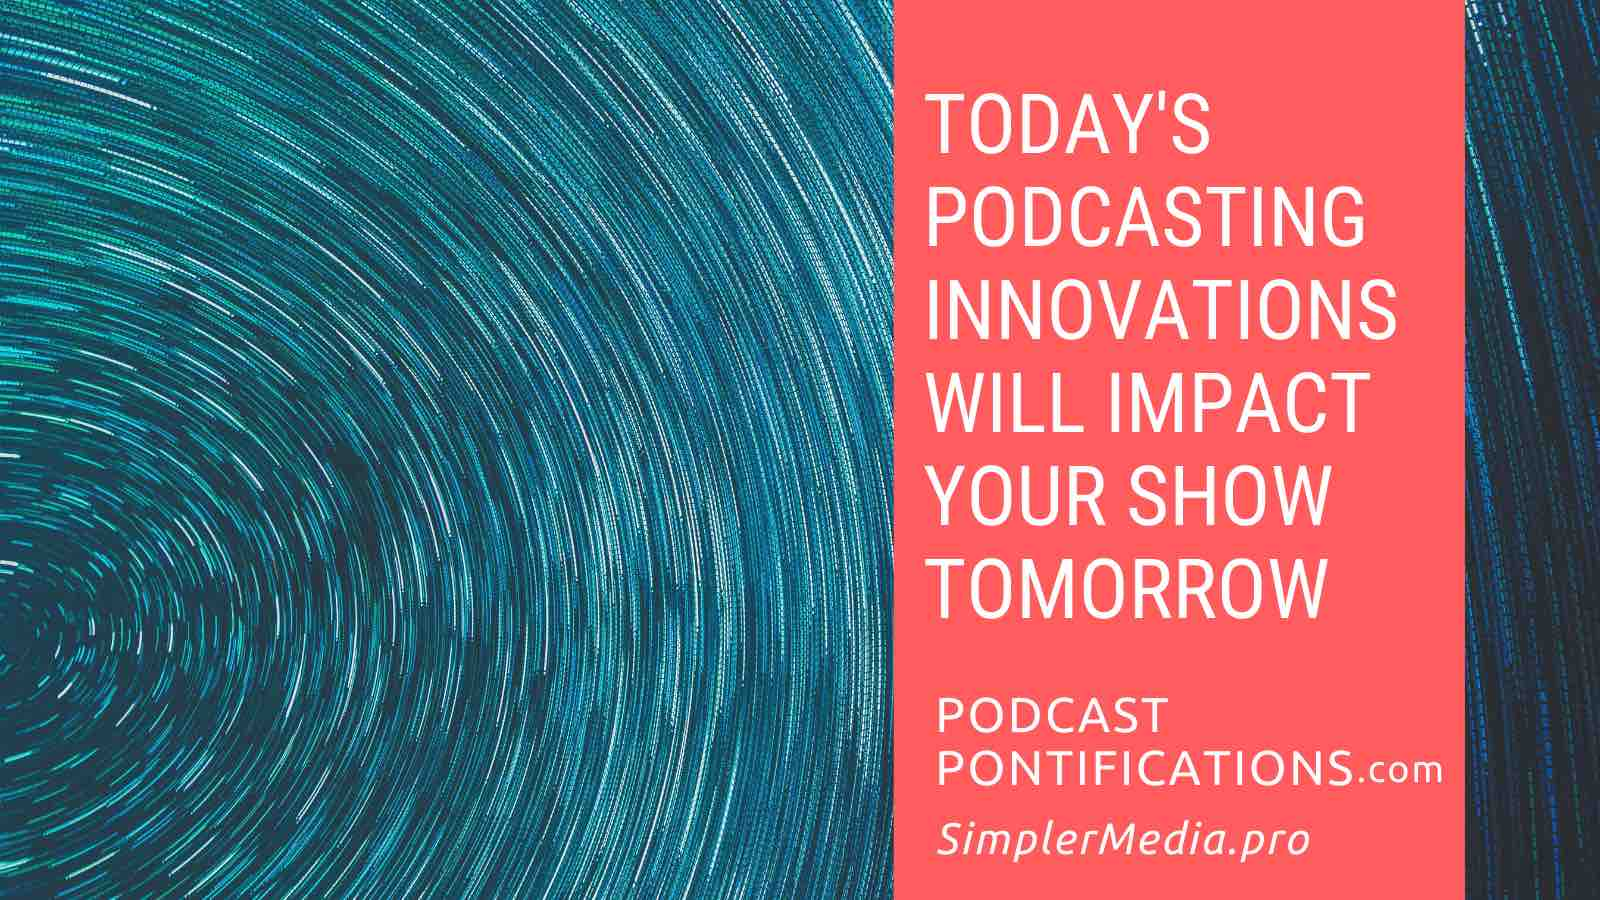 Today's Podcasting Innovations Will Impact Your Show Tomorrow